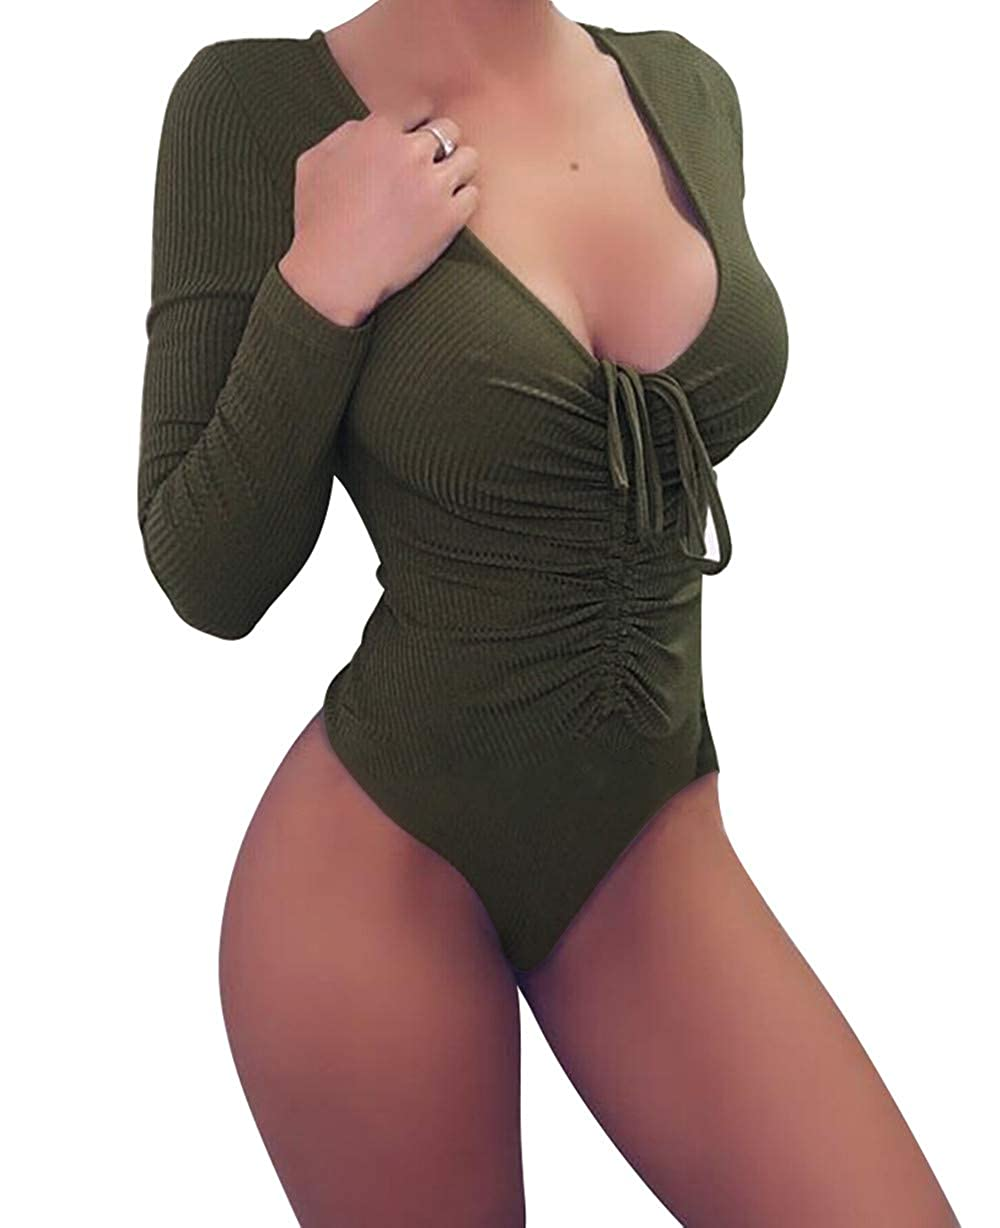 Geluboao Women's V Neck Drawstring Lace UP Tight Tie Knot Bodysuit Army Green S